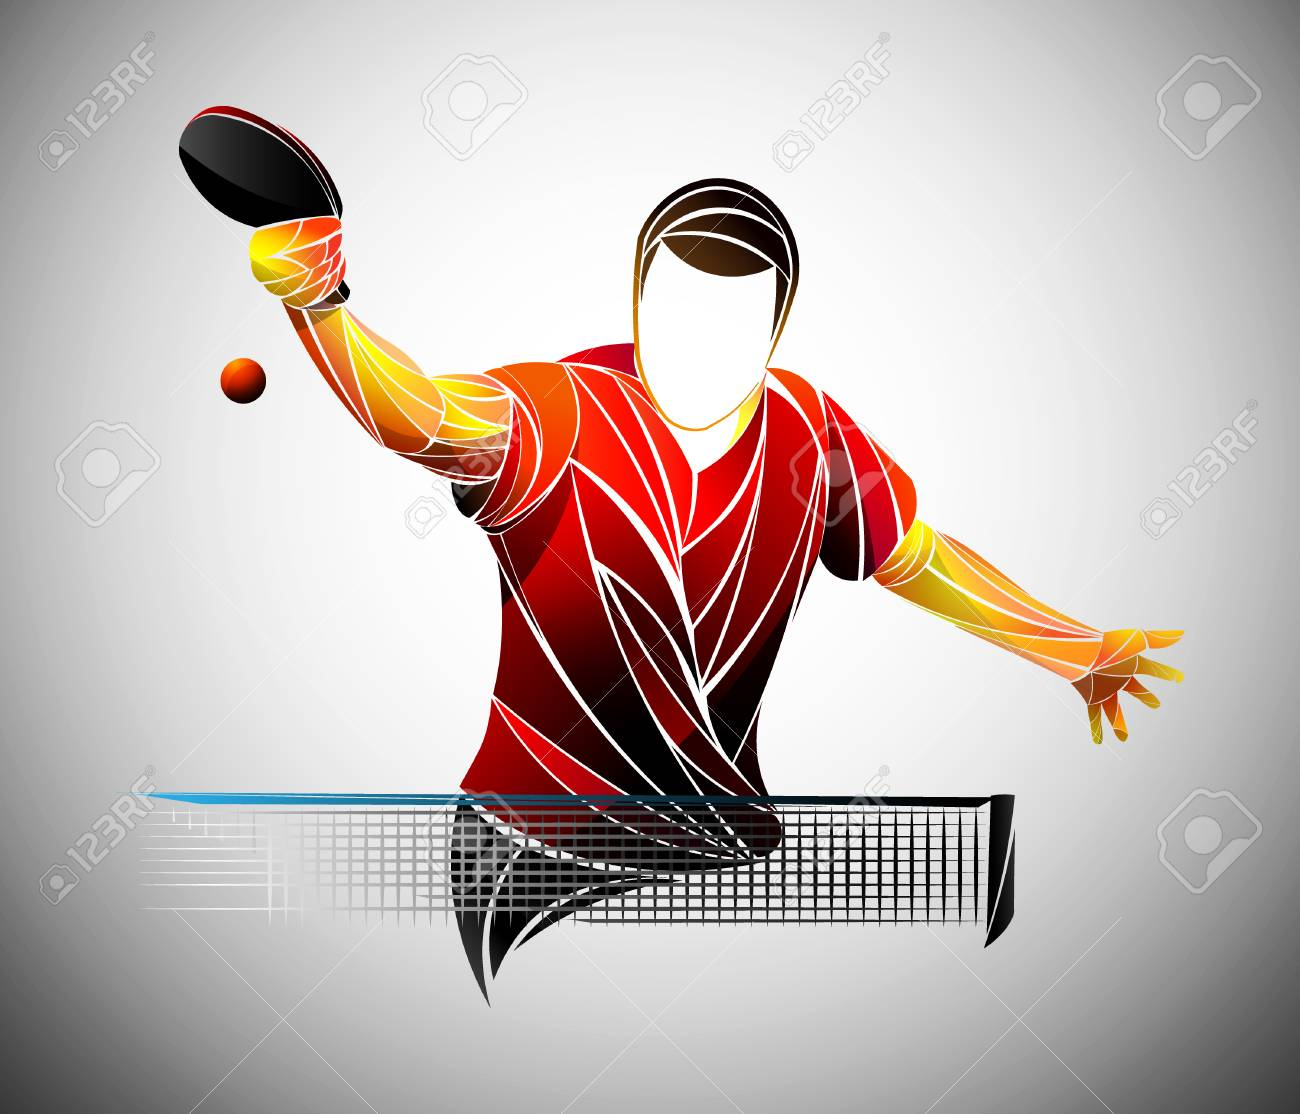 Table Tennis Ping Pong Table Tennis Player Athlete Game Royalty Free Cliparts Vectors And Stock Illustration Image 110250061